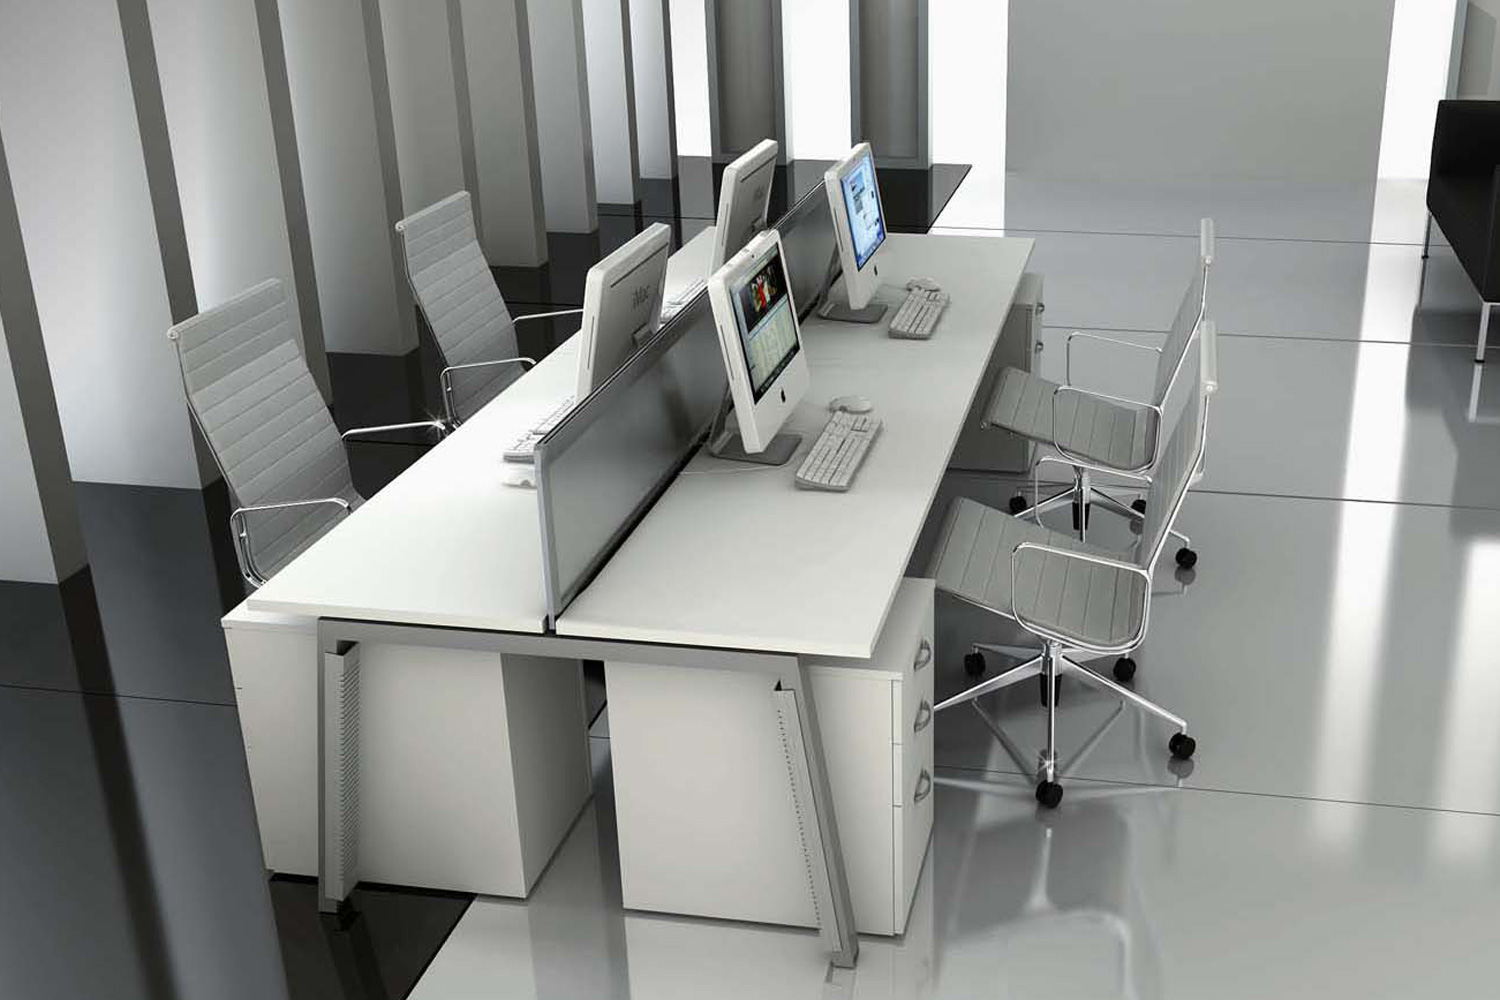 Grey themed office interior with contemporary tiling and white desks